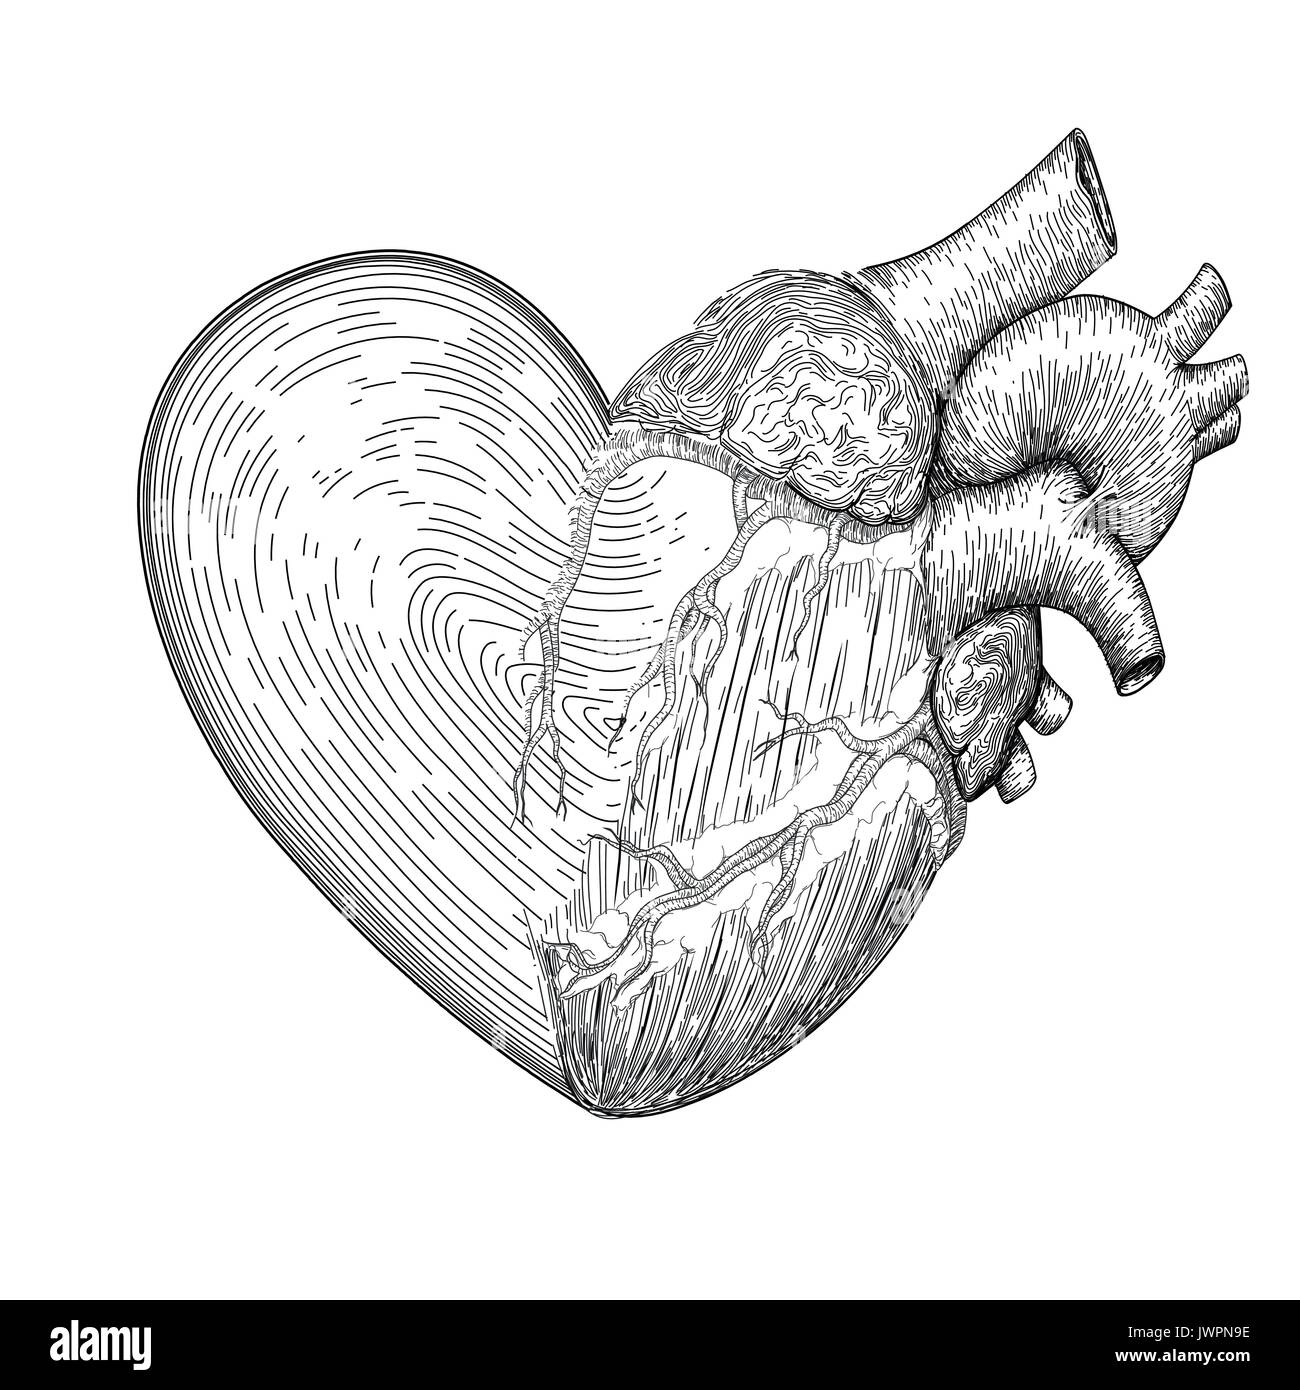 Heart Symbol With Half Real Human Heart Together Hand Drawn Like